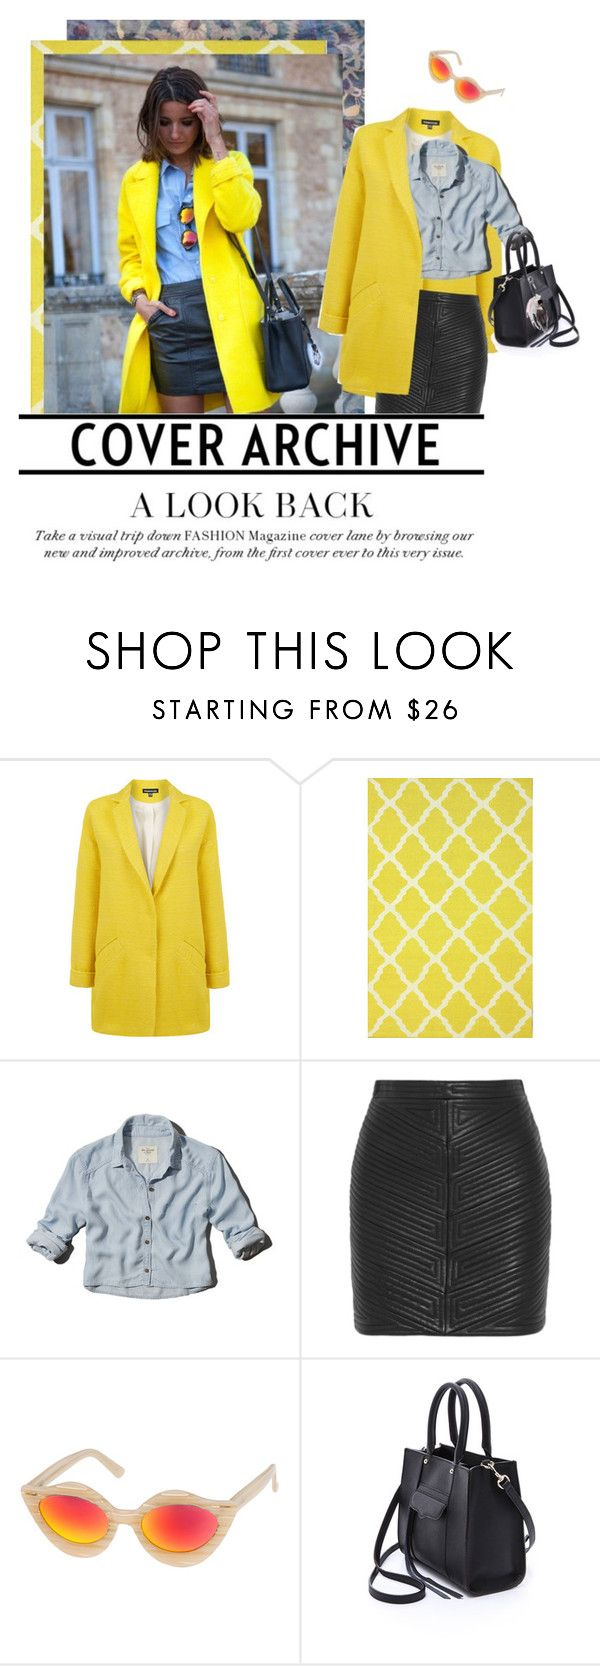 """""""Happy Easter!"""" by mara-petcana ❤ liked on Polyvore featuring The Rug Market, Warehouse, nuLOOM, Piaget, Abercrombie & Fitch, Balmain, House of Holland, Rebecca Minkoff and Fendi"""